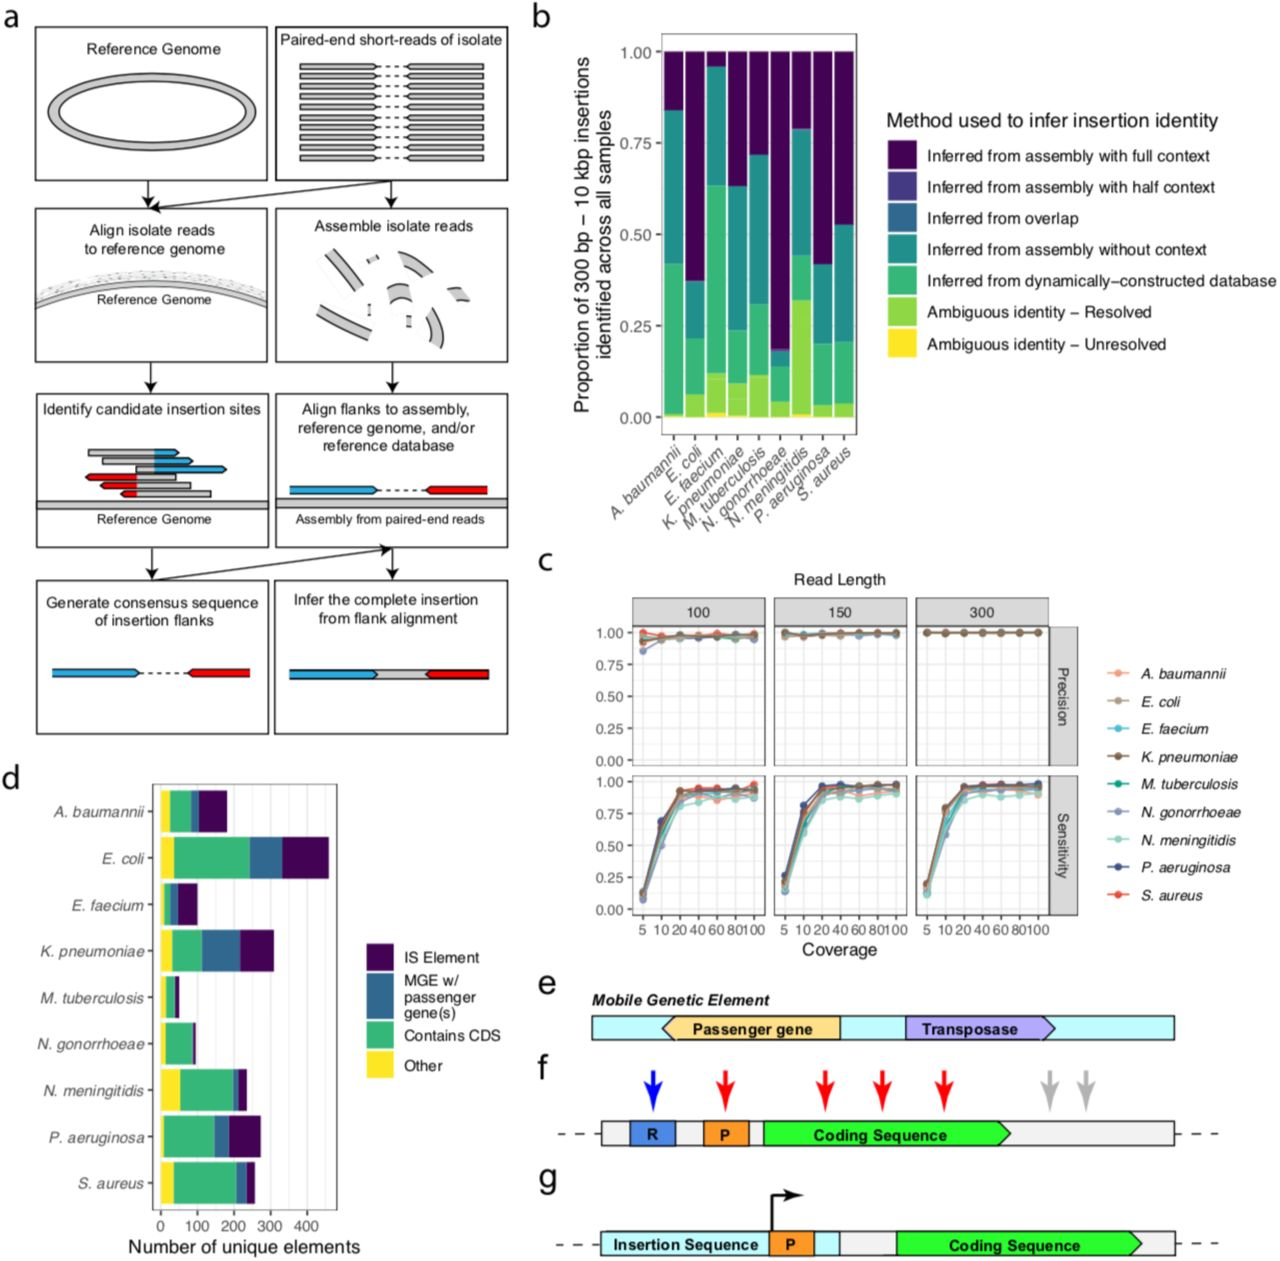 """A new approach to identify MGEs from short-read sequencing data. a , A schematic representation of the workflow implemented in this study. The analysis requires a reference genome of a given species and short-read sequencing FASTQ files as input. The reads are aligned to the provided reference genome and assembled using third-party software. Candidate MGE insertion sites are identified from the alignment to the reference using our own software suite, called mustache . This approach identifies sites where oppositely-oriented clipped read ends are found within 20 bases of each other. Consensus sequences of these flanking ends are then identified, with the assumption being that they represent the flanks of the inserted element. The intervening sequence between the candidate flanks is inferred by aligning flanks to the assembled genome, a reference genome, and our dynamically constructed reference database of all identified MGEs. b , The inference method used to characterize the inserted elements of the downloaded data. """"Inferred from assembly with full context"""" indicates that the sequence was found in the expected sequence context within the assembly and is considered one of the highest-confidence inferred sequences. """"Inferred from assembly with half context"""" indicates that the sequence was found in the expected sequence context on one end of the inserted element, and the other element was truncated at the end of a partially assembled contig. """"Inferred from overlap"""" indicates that the sequence was recovered simply by finding an overlap of two paired flanks. Very few elements are recovered by this method, as we are limiting our analysis to only elements greater than 300 base pairs in length. """"Inferred from assembly without context"""" indicates that the sequence identified was recovered from the assembly, but not within the expected sequence context, presumably due to assembly errors. """"Inferred from dynamically-constructed database"""" refers to elements that were not recover"""